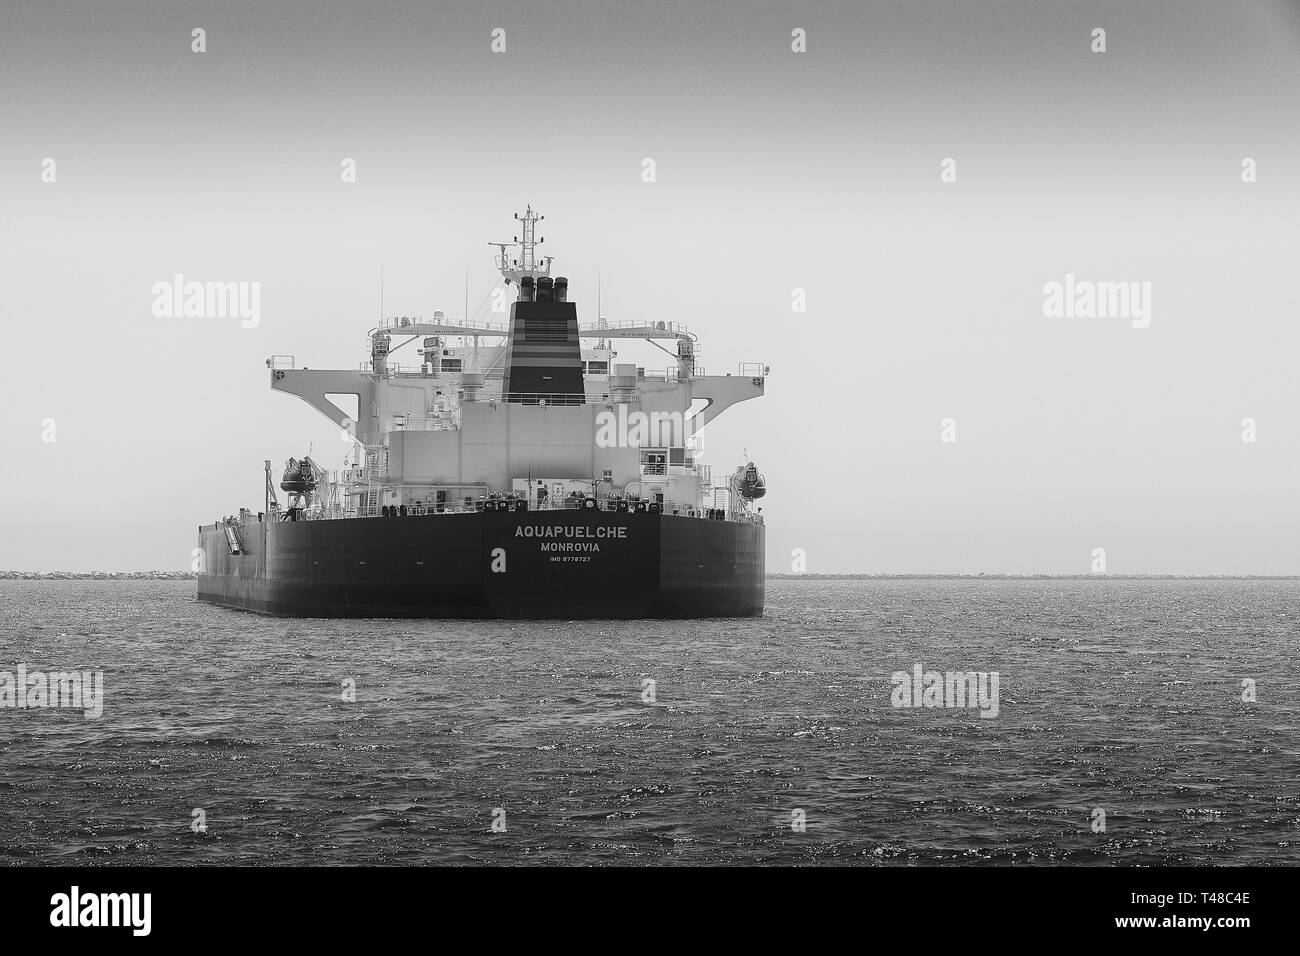 Black And White Photo Of The Stern Of The Supertanker, (Crude Oil Tanker), AQUAPUELCHE, Anchored In The Port Of Long Beach, California, USA. - Stock Image